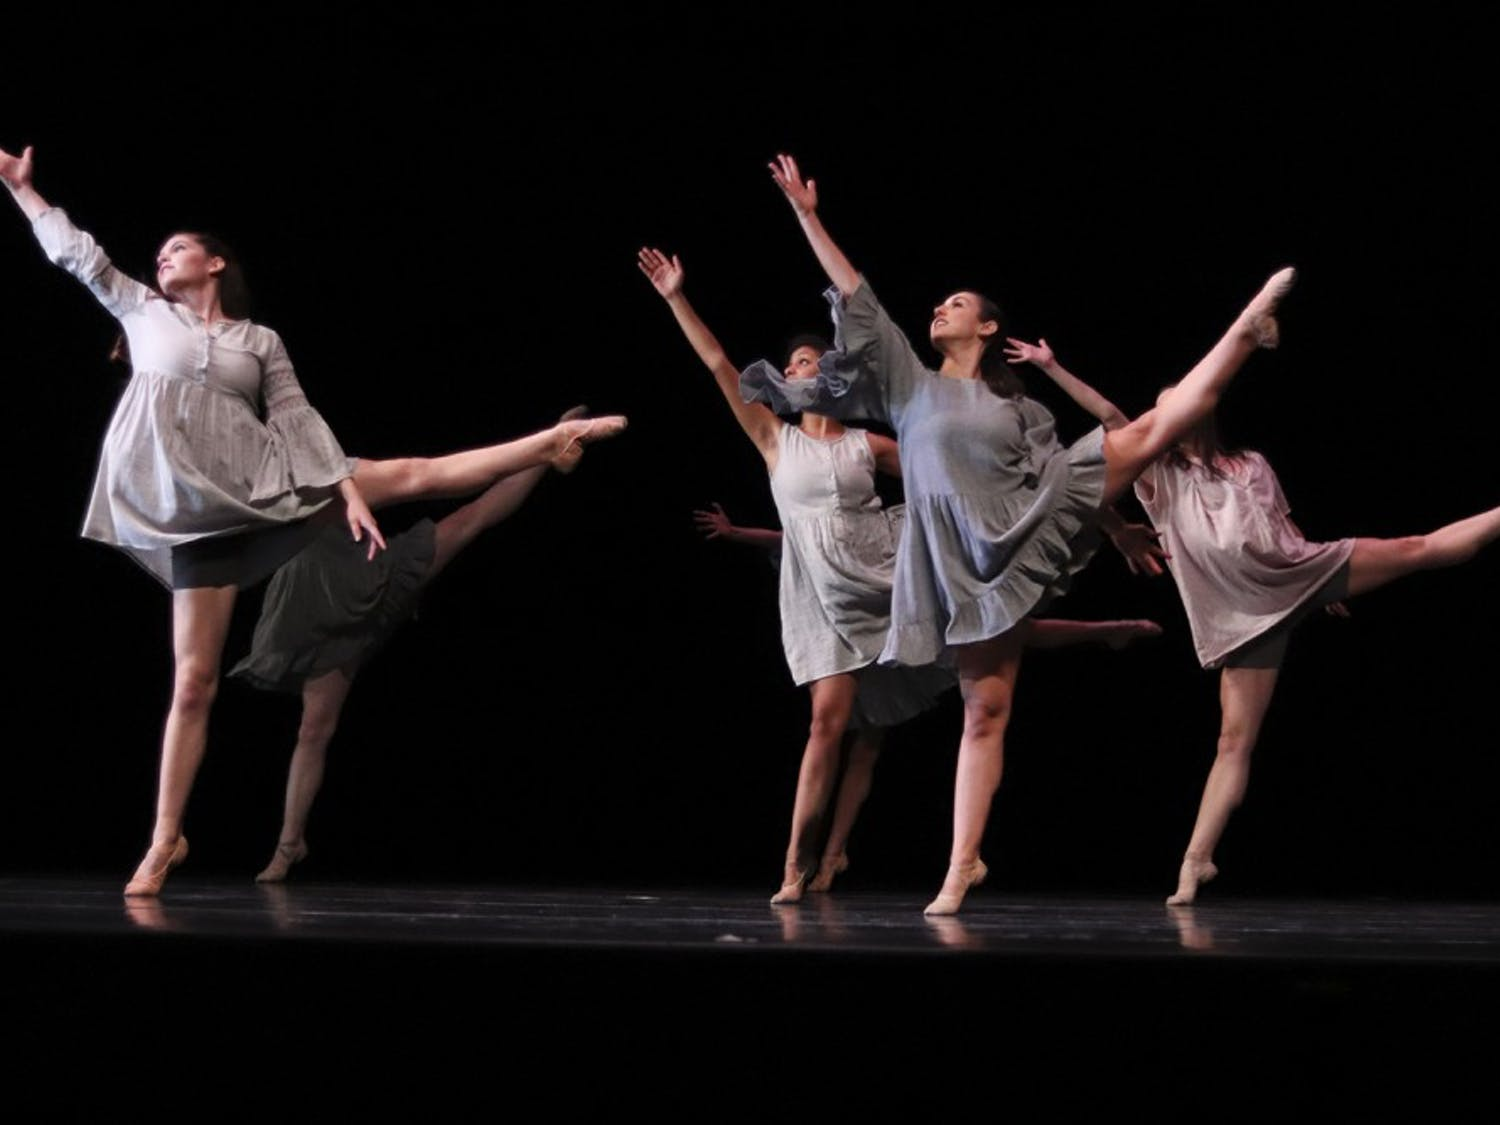 A group of dancers showcase their talent in the 2017 USC Dance Concert.